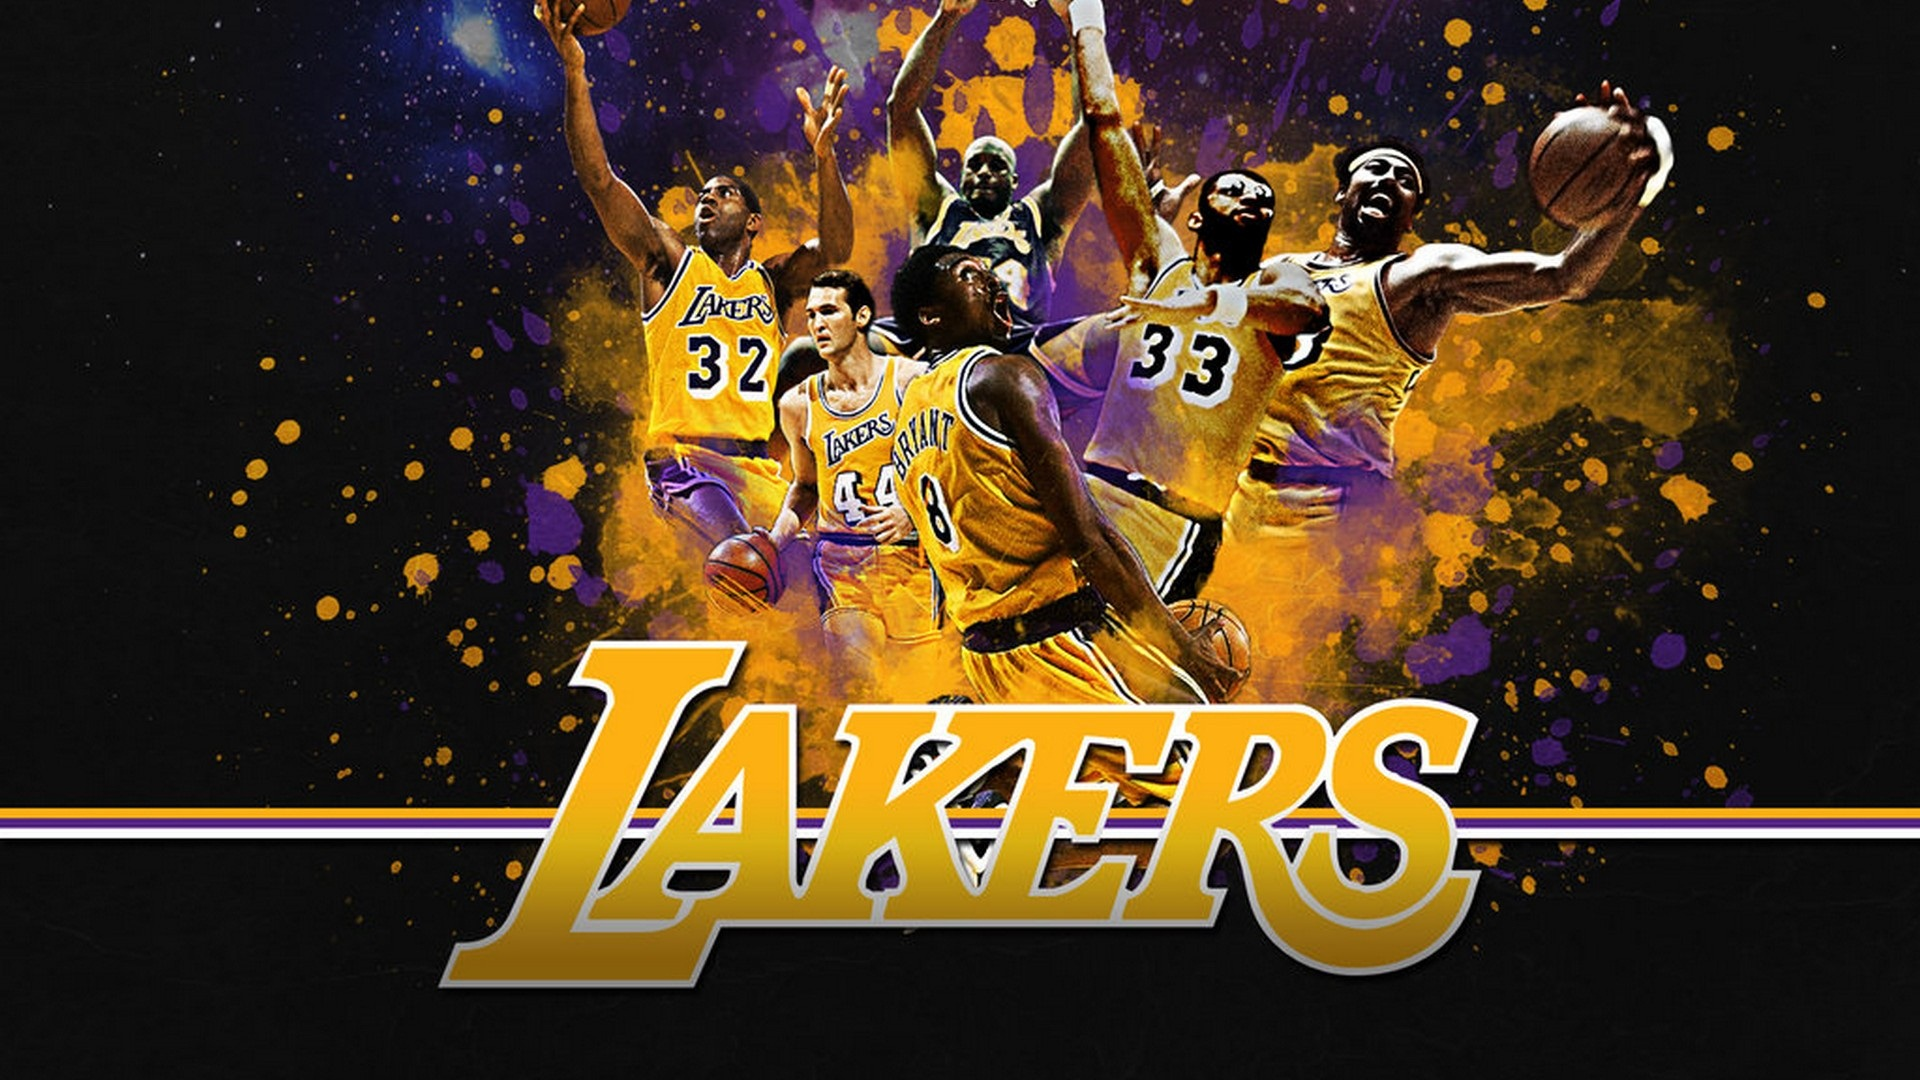 HD Backgrounds Los Angeles Lakers 2020 Basketball Wallpaper 1920x1080